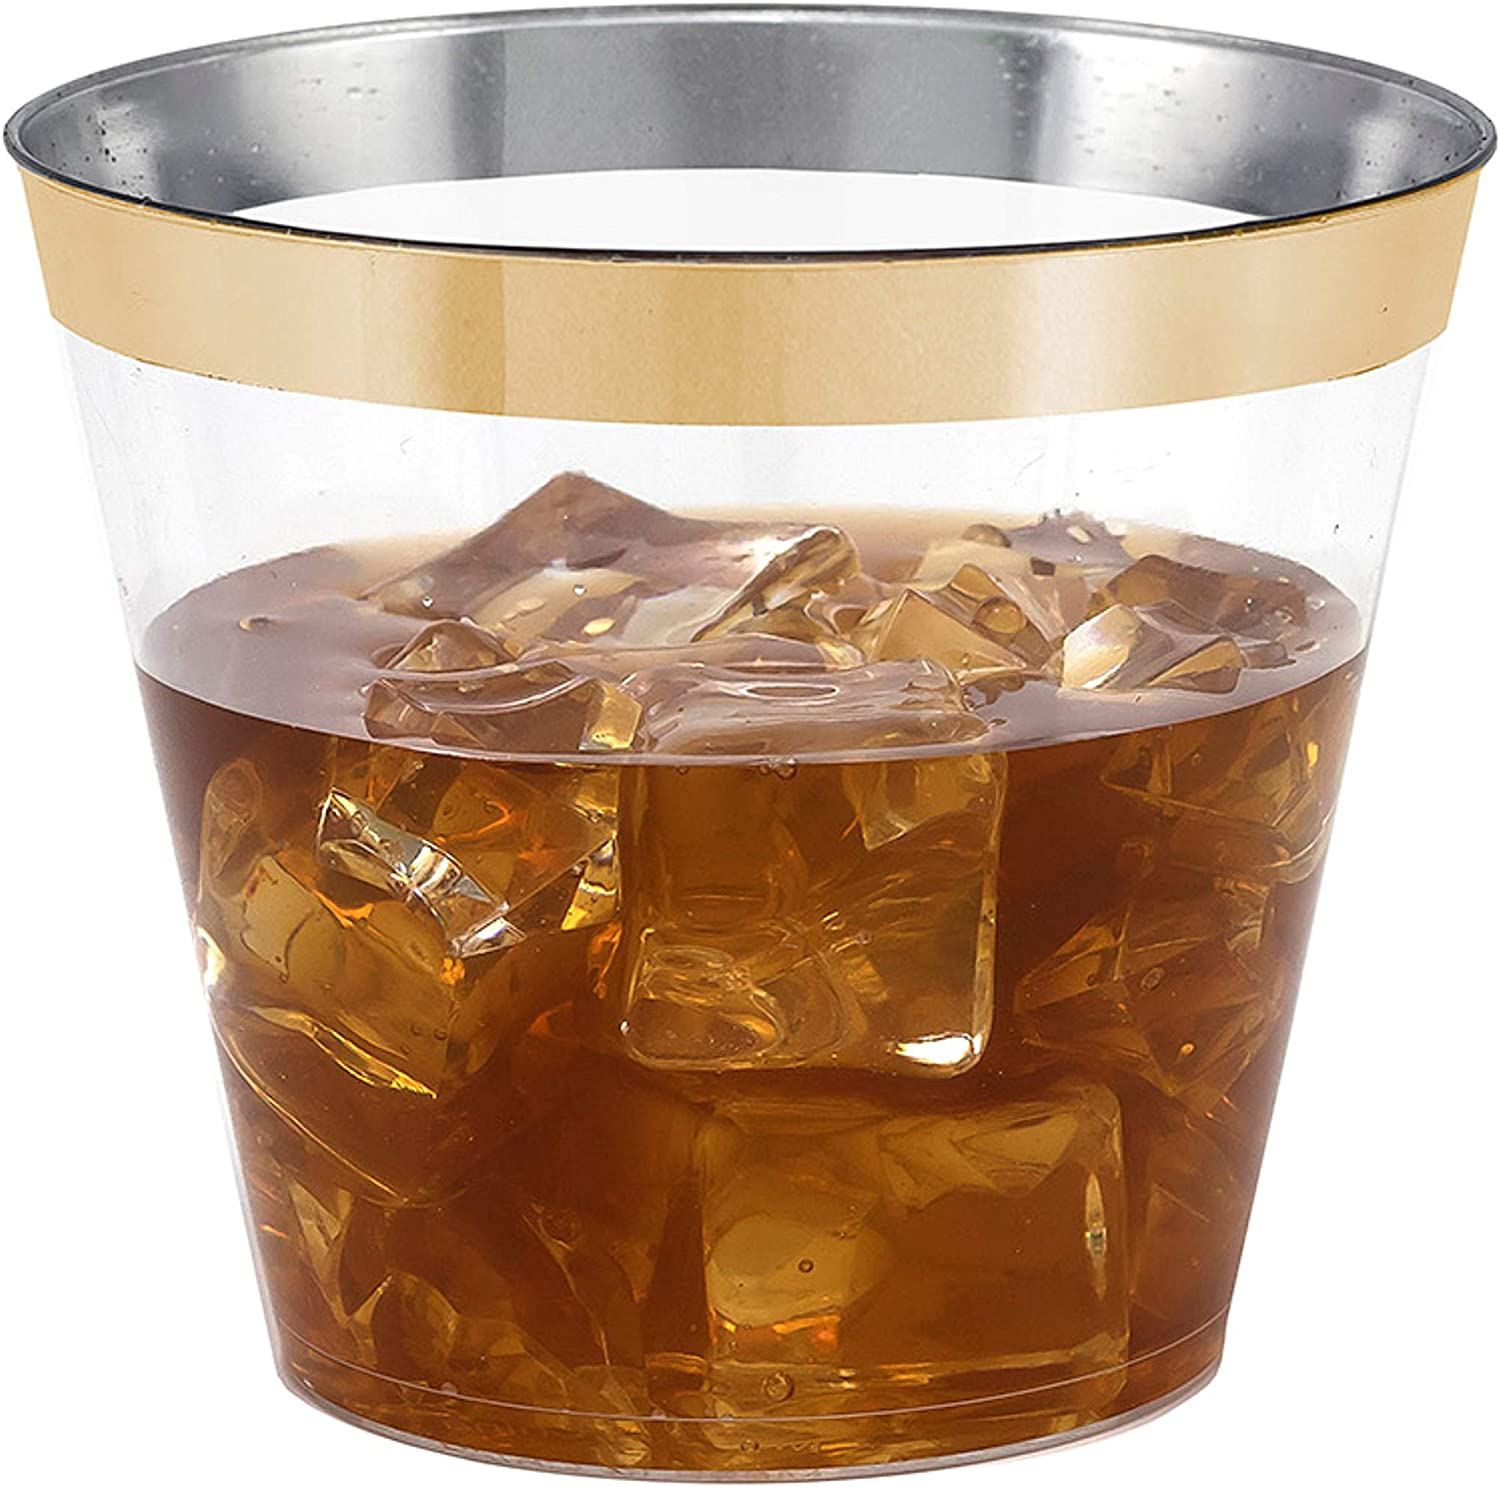 100 Gold Rimmed Clear Hard Plastic Cups | 9 oz. Fancy Disposable Tumblers (100-Pack) by Bloomingoods